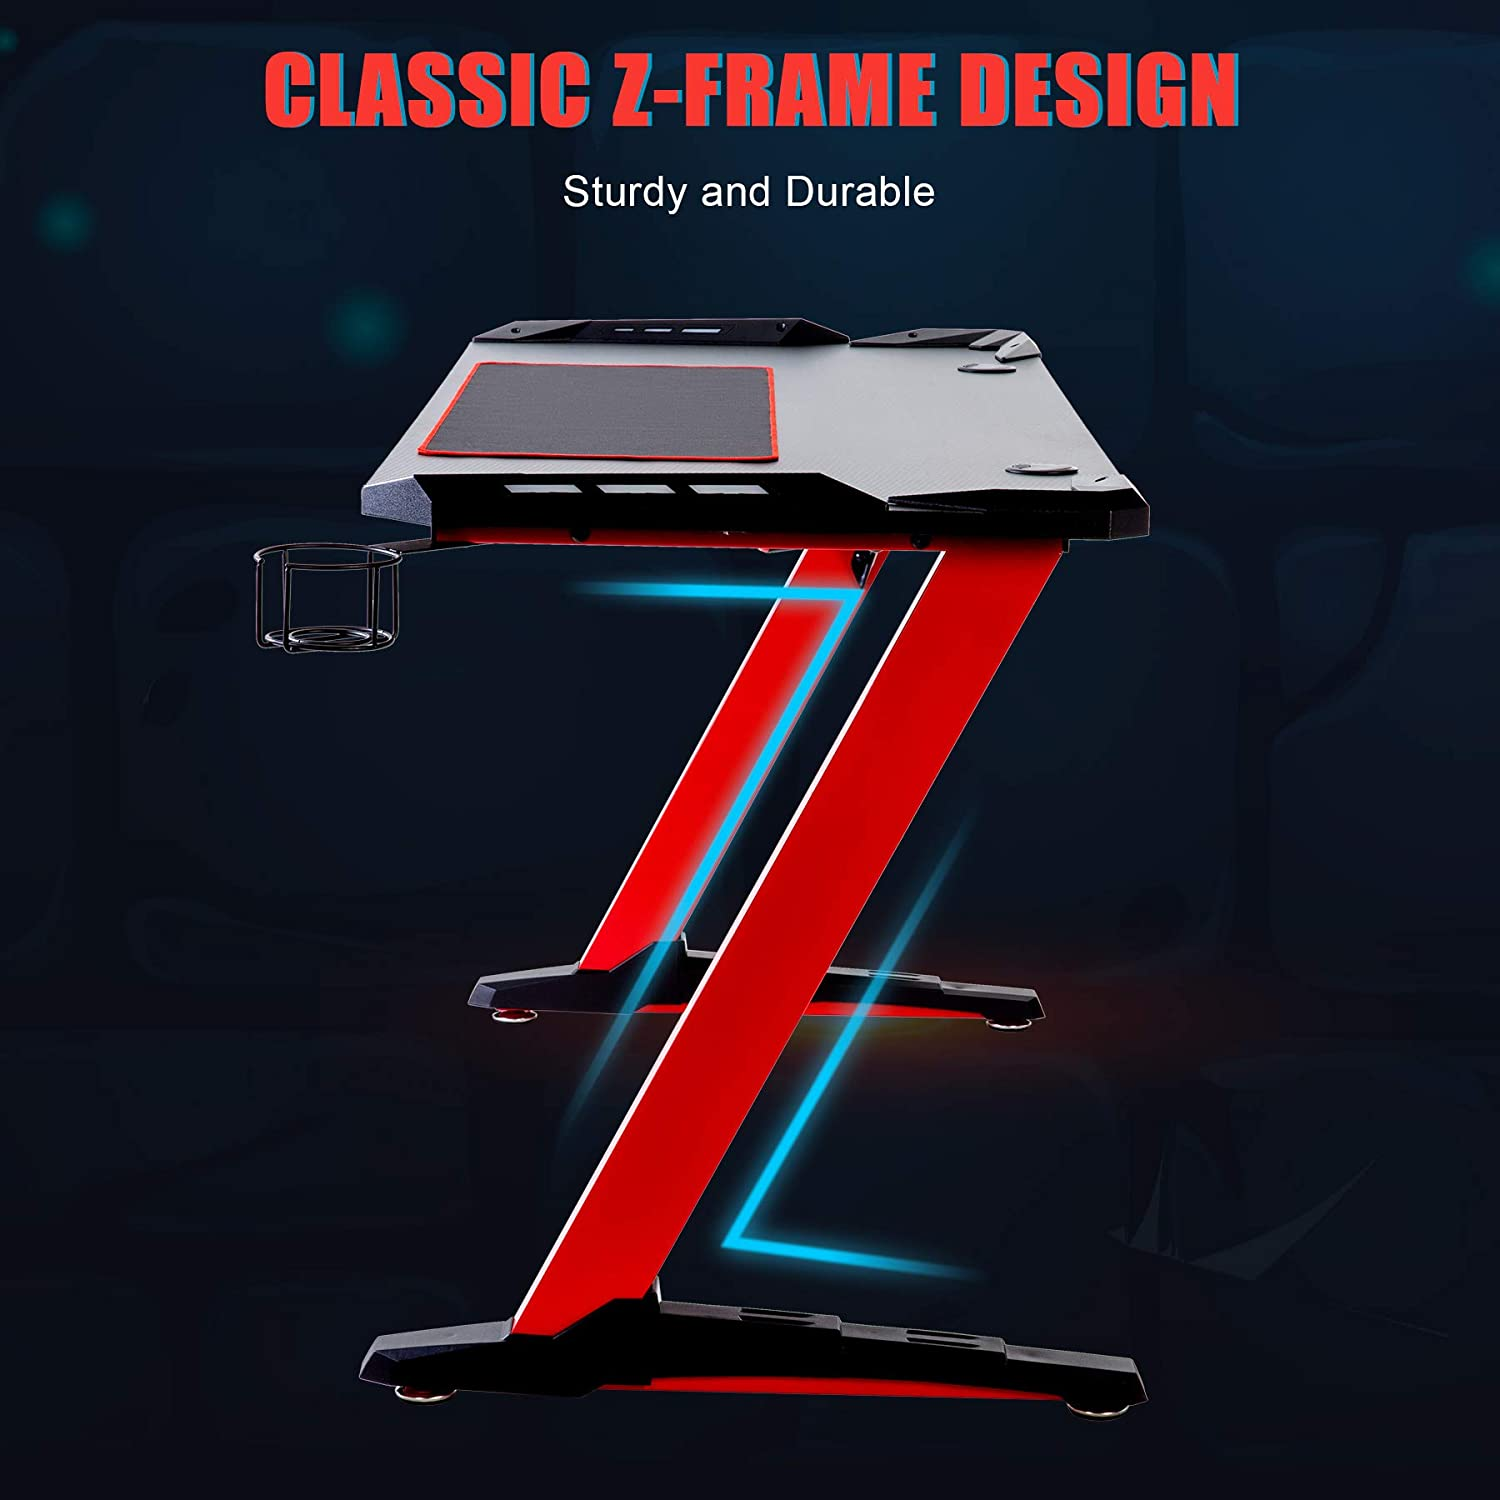 Computer Desk for Home Office Z Shaped Ergonomic Gaming Table w 6-Colour RGB Lighting CO-Z 140cm 55Inch Gaming Desk Cup Holder /& Headphone Hook Controller Stand Red Large Mouse Mat